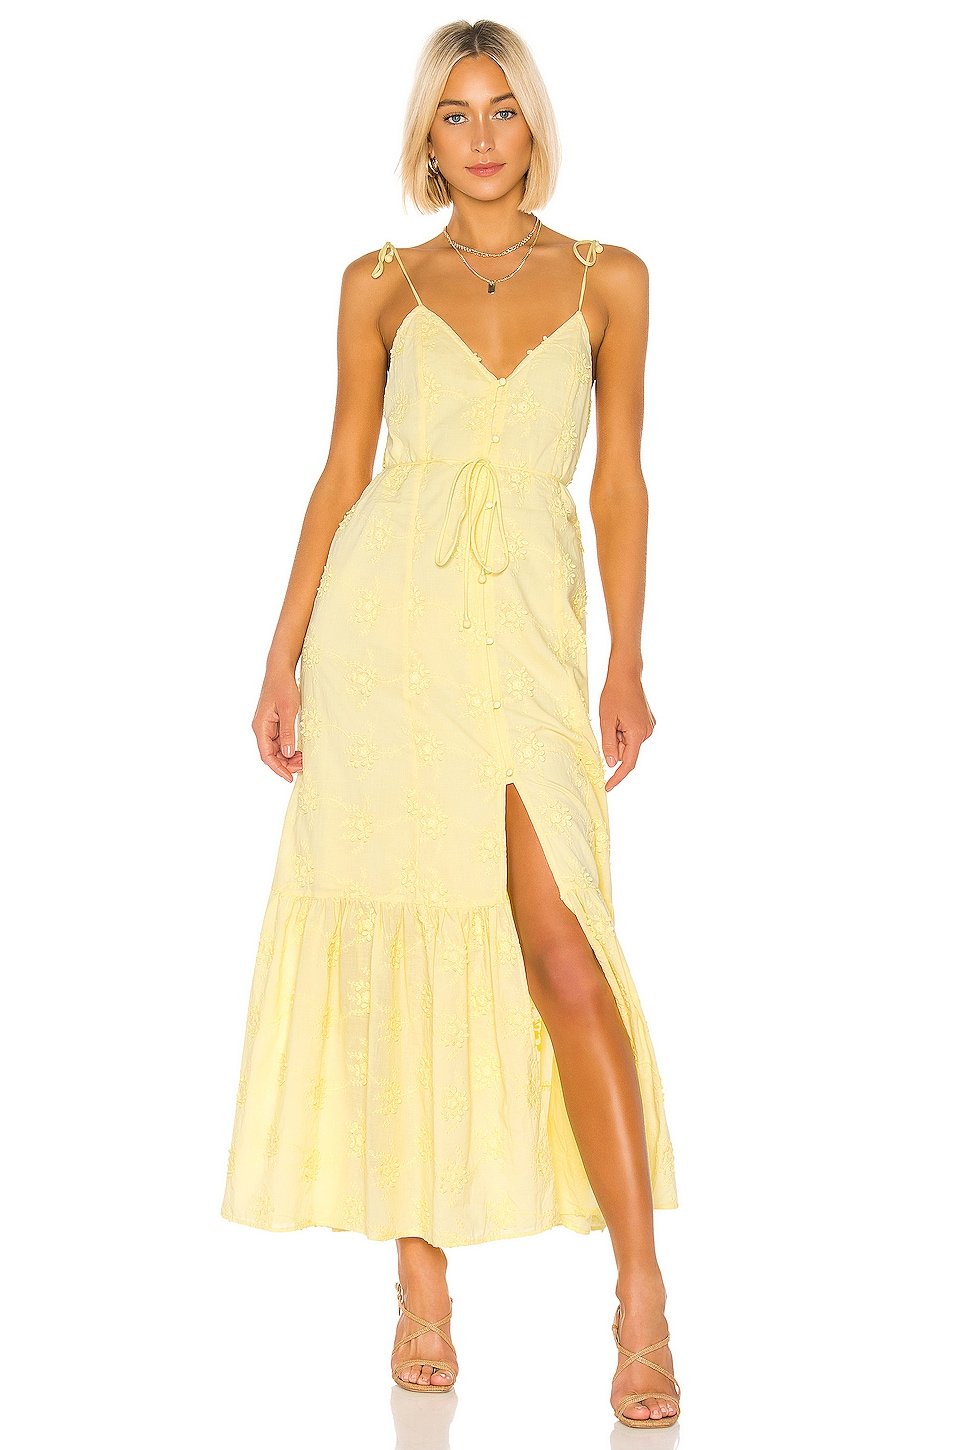 Tularosa Villa Dress in Pastel Yellow